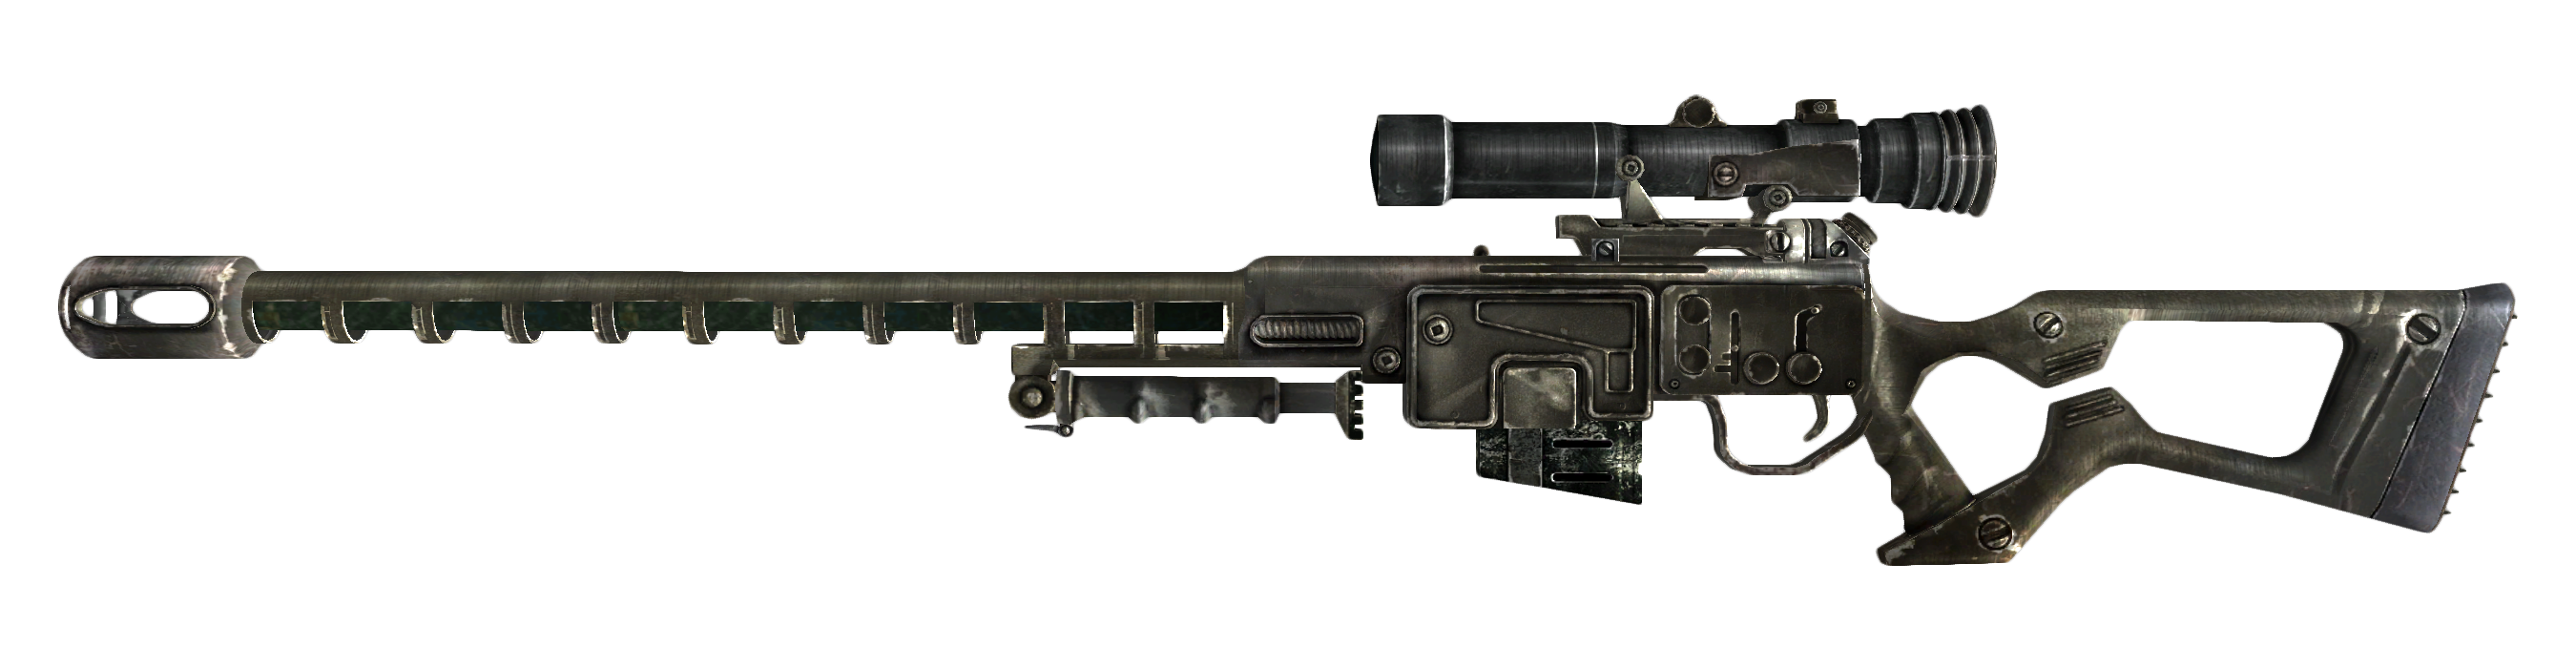 Classic Sniper PNG Image